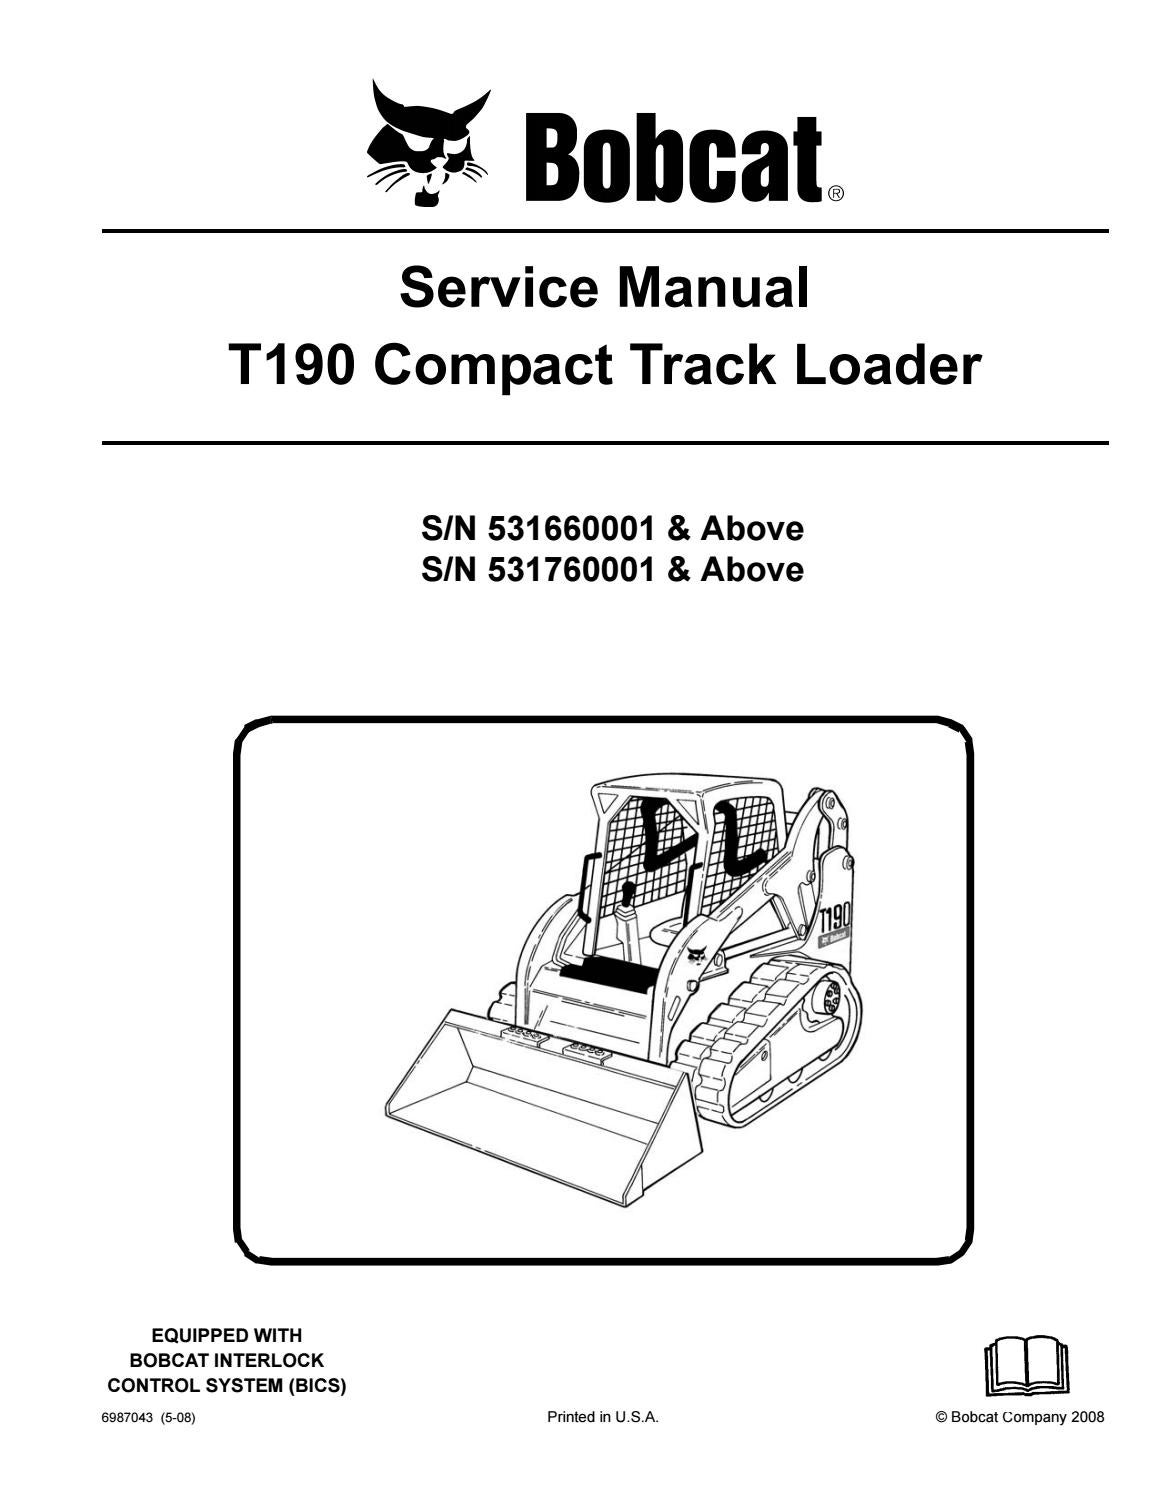 hight resolution of bobcat t190 compact track loader service repair manual snsn 531660001 above sn 531760001 above by ujhsenfnse issuu